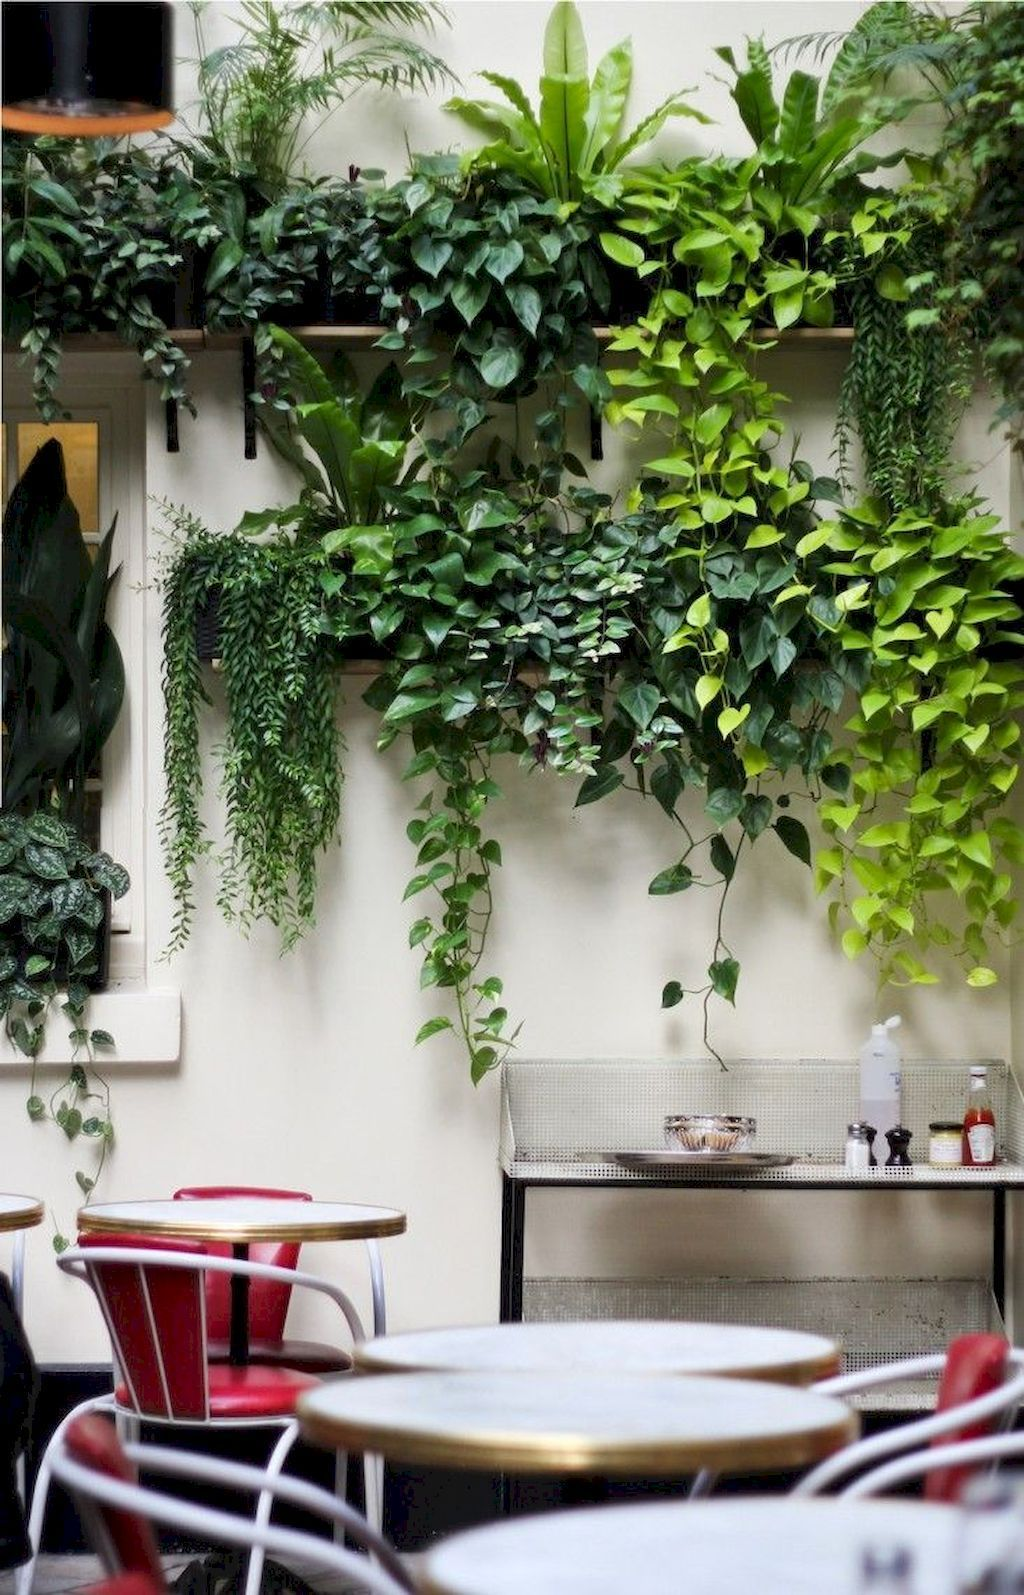 Amazing Living Wall Indoor Decoration Ideas 27